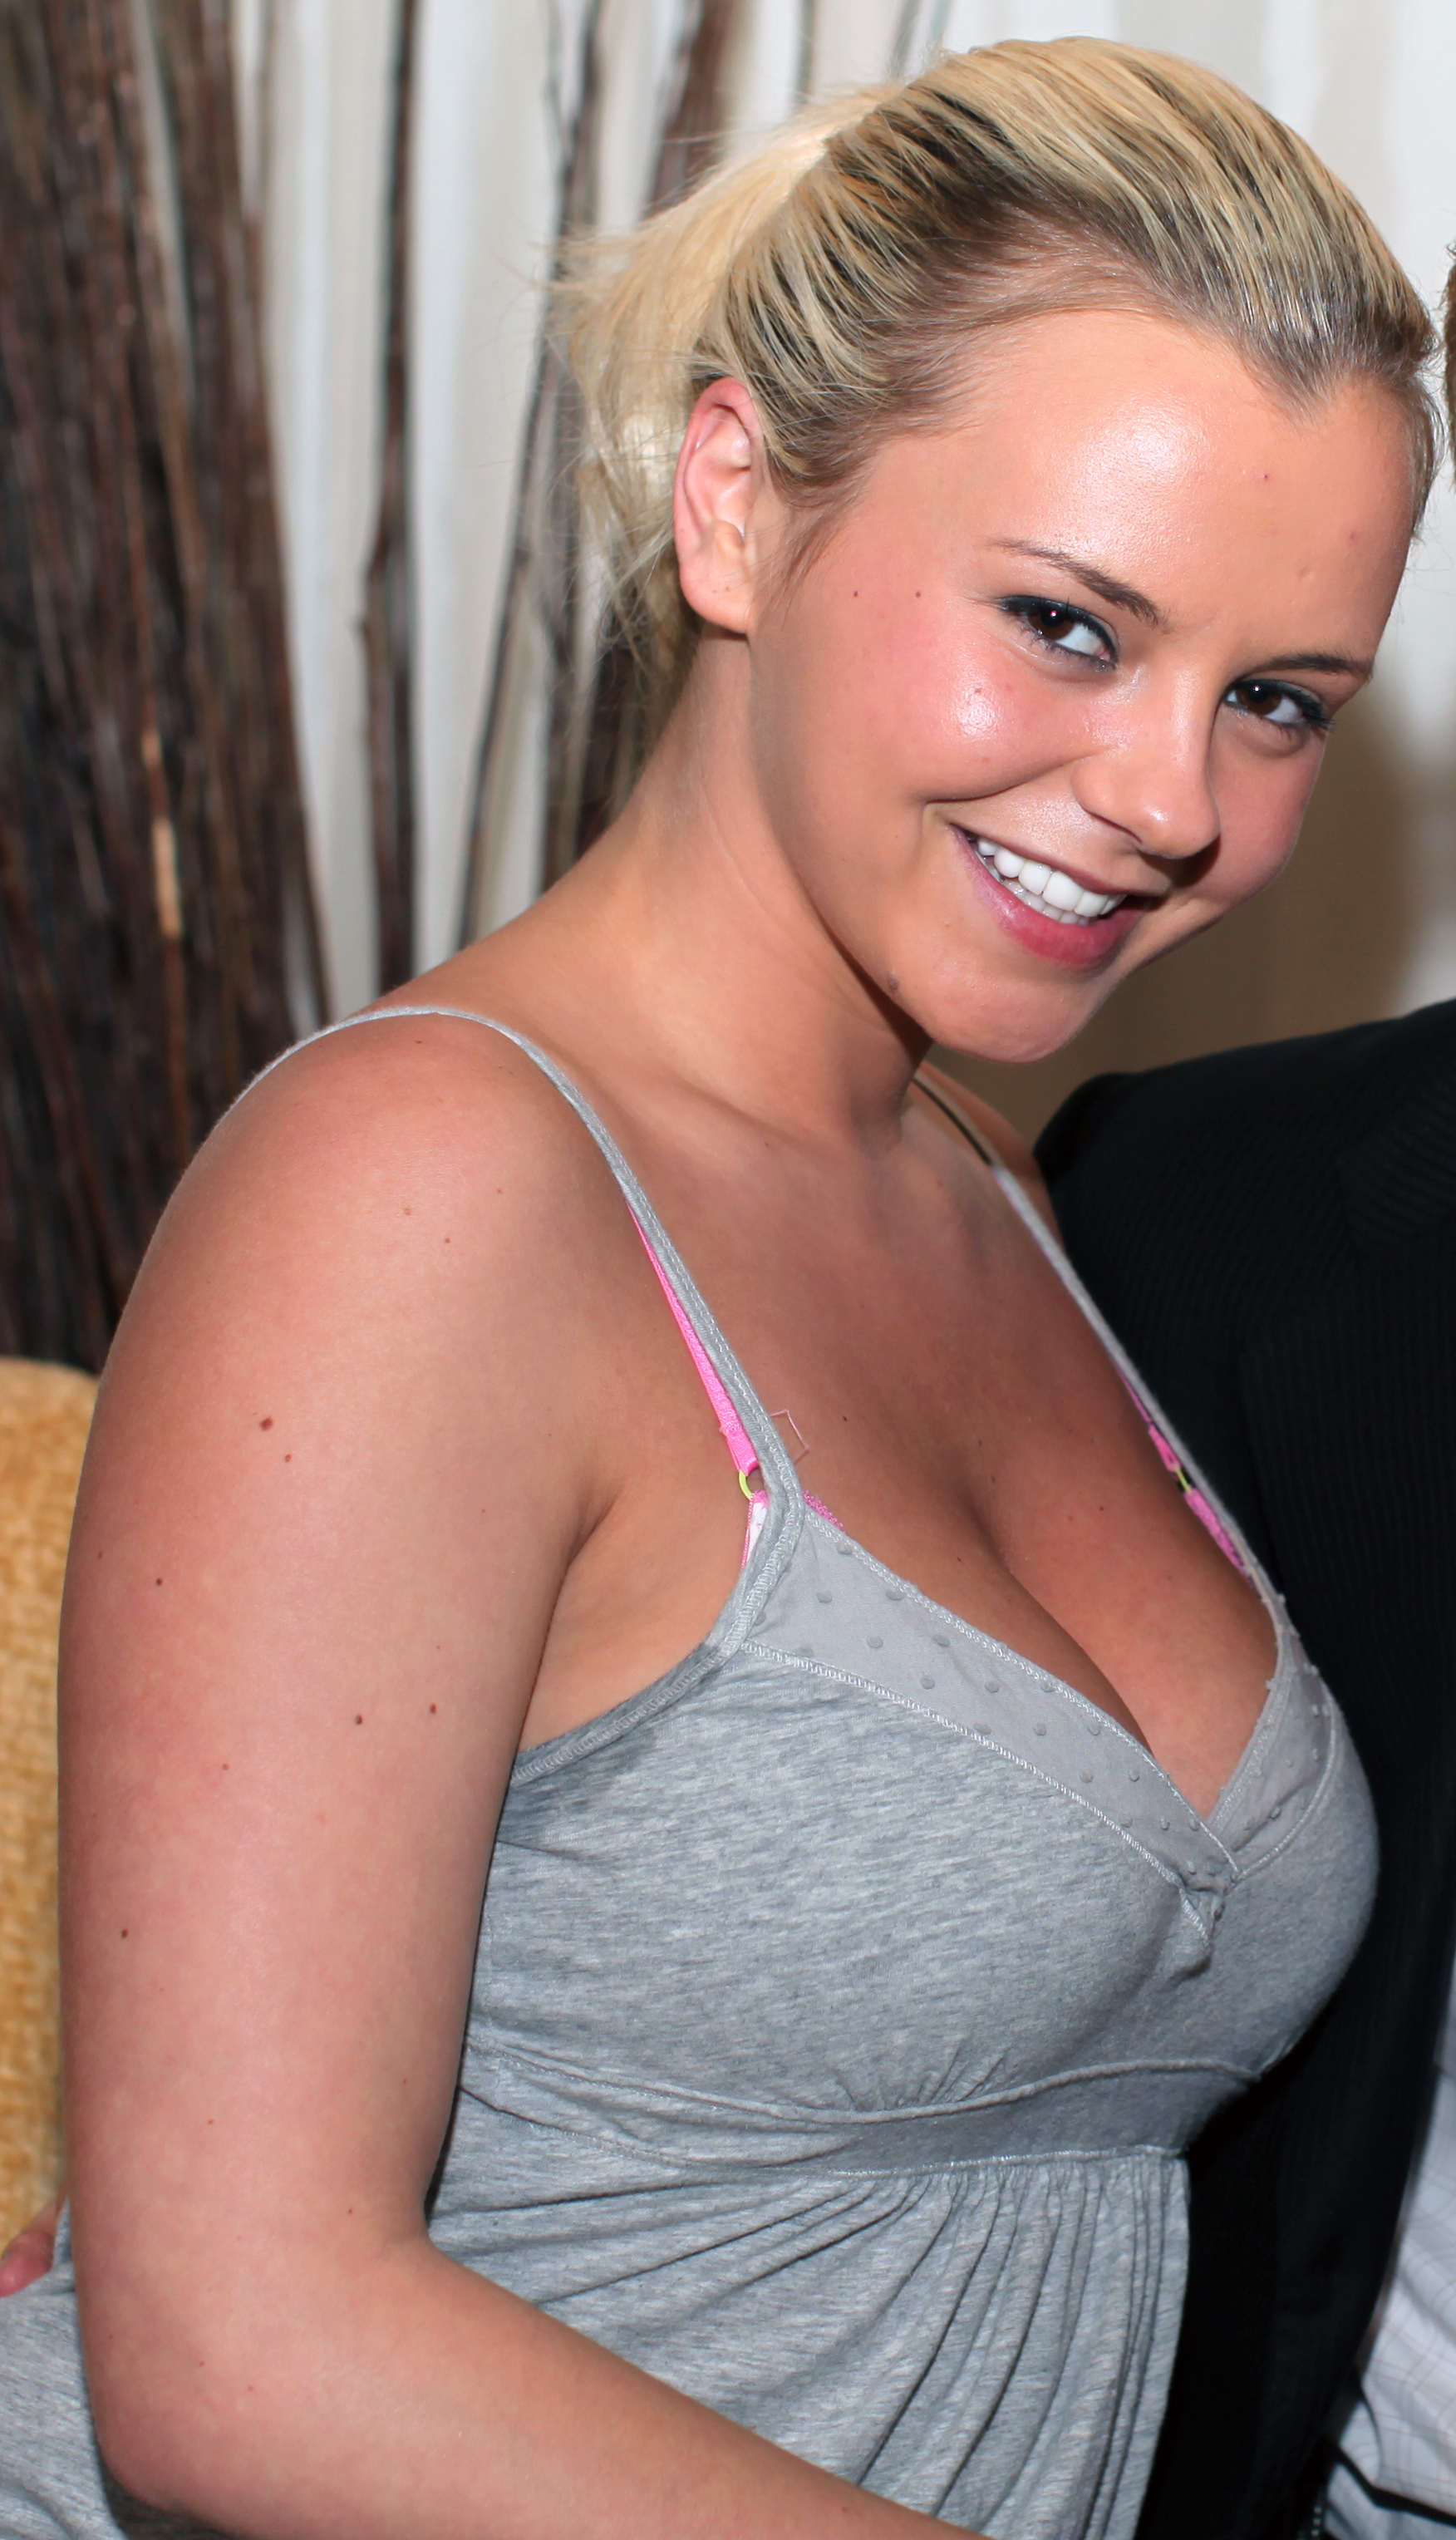 Bree Olson Photo Via Wikimedia Commons